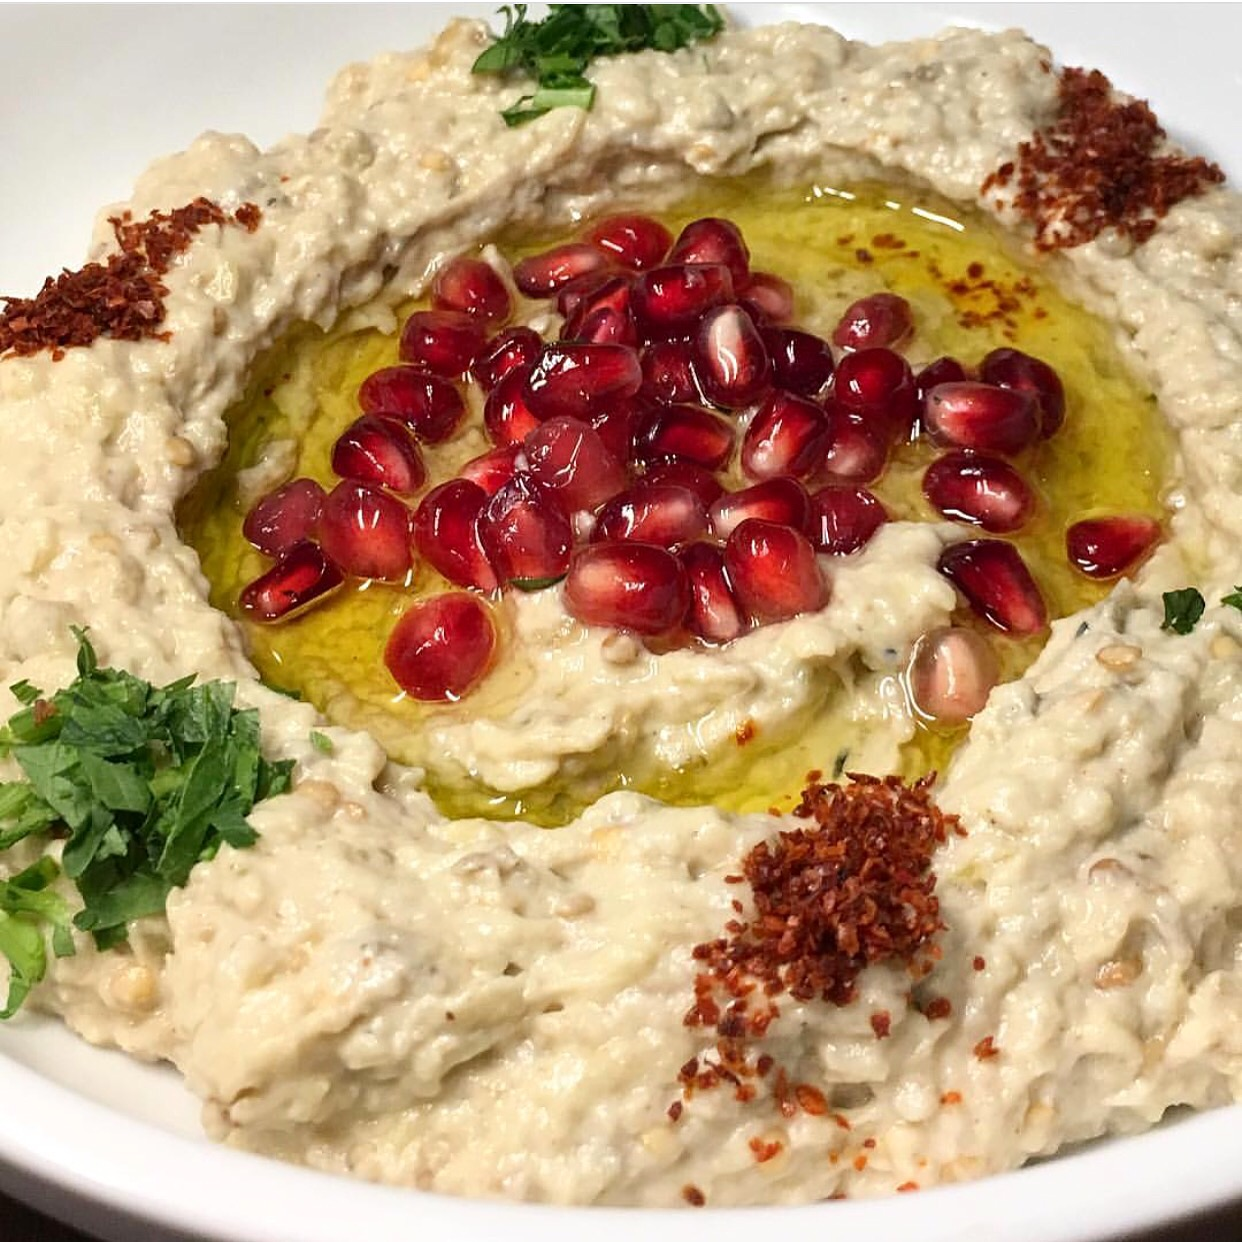 House made babaghanoush with fresh ingredients